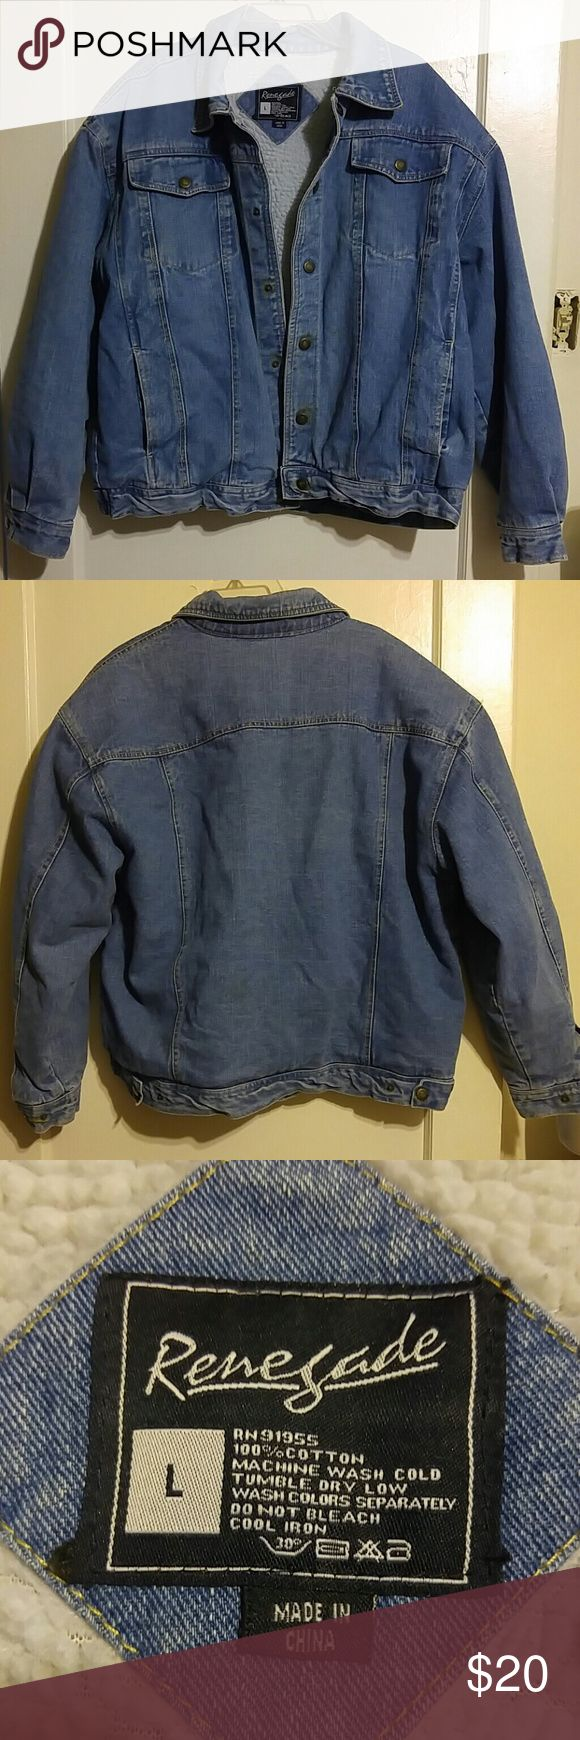 Renegade Men's Hean Jacket Heavy Jean Jacket fully lined, very warm n fuzzy inside. Has four pockets. Very good condition. Perfect for freezing weather. Renegade Jackets & Coats